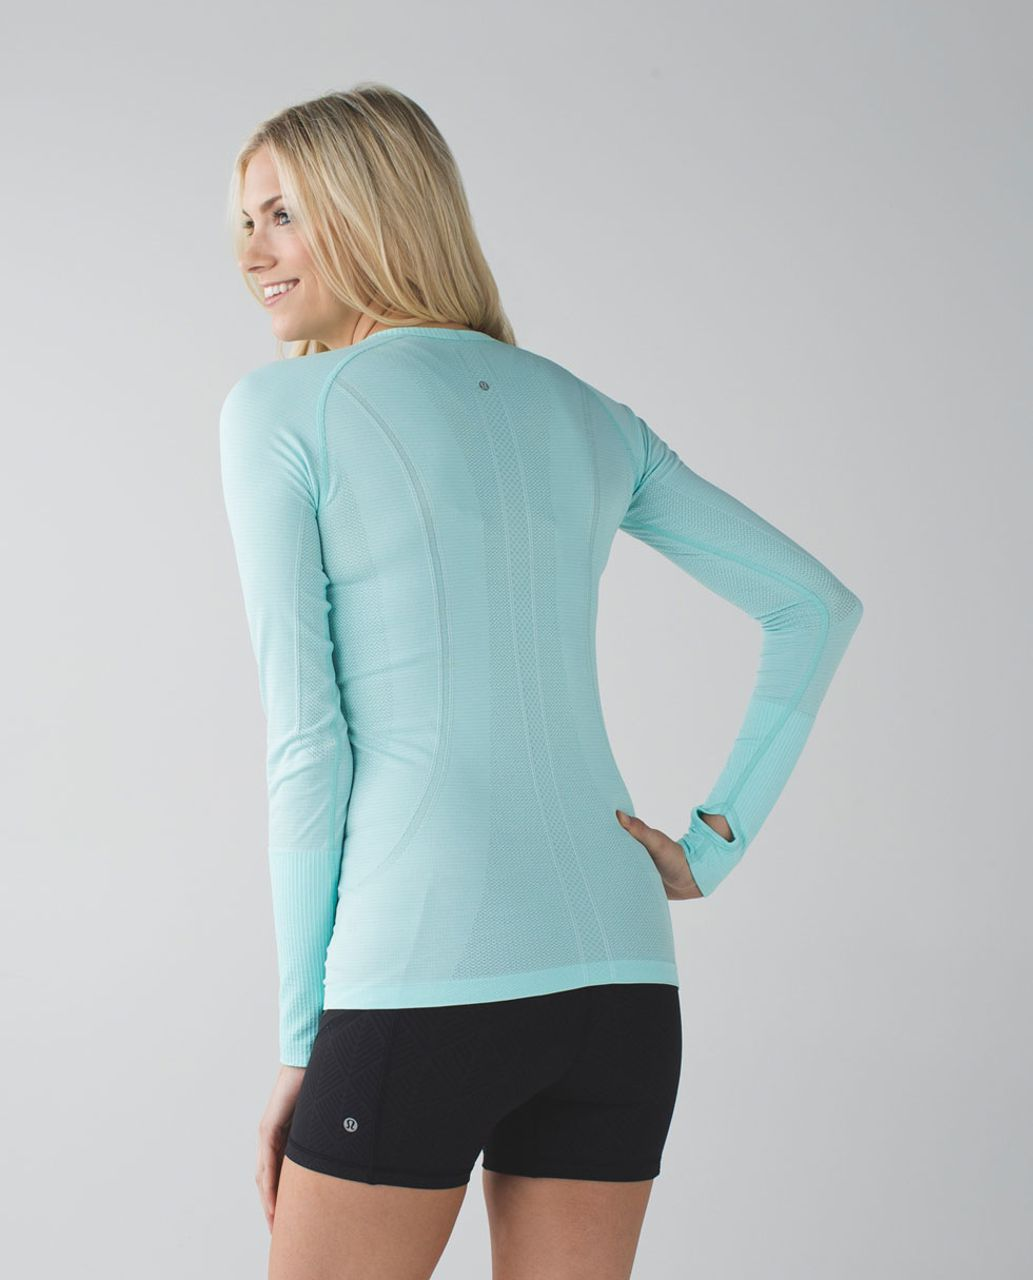 Lululemon Swiftly Tech Long Sleeve Crew - Heathered Tranquil Blue